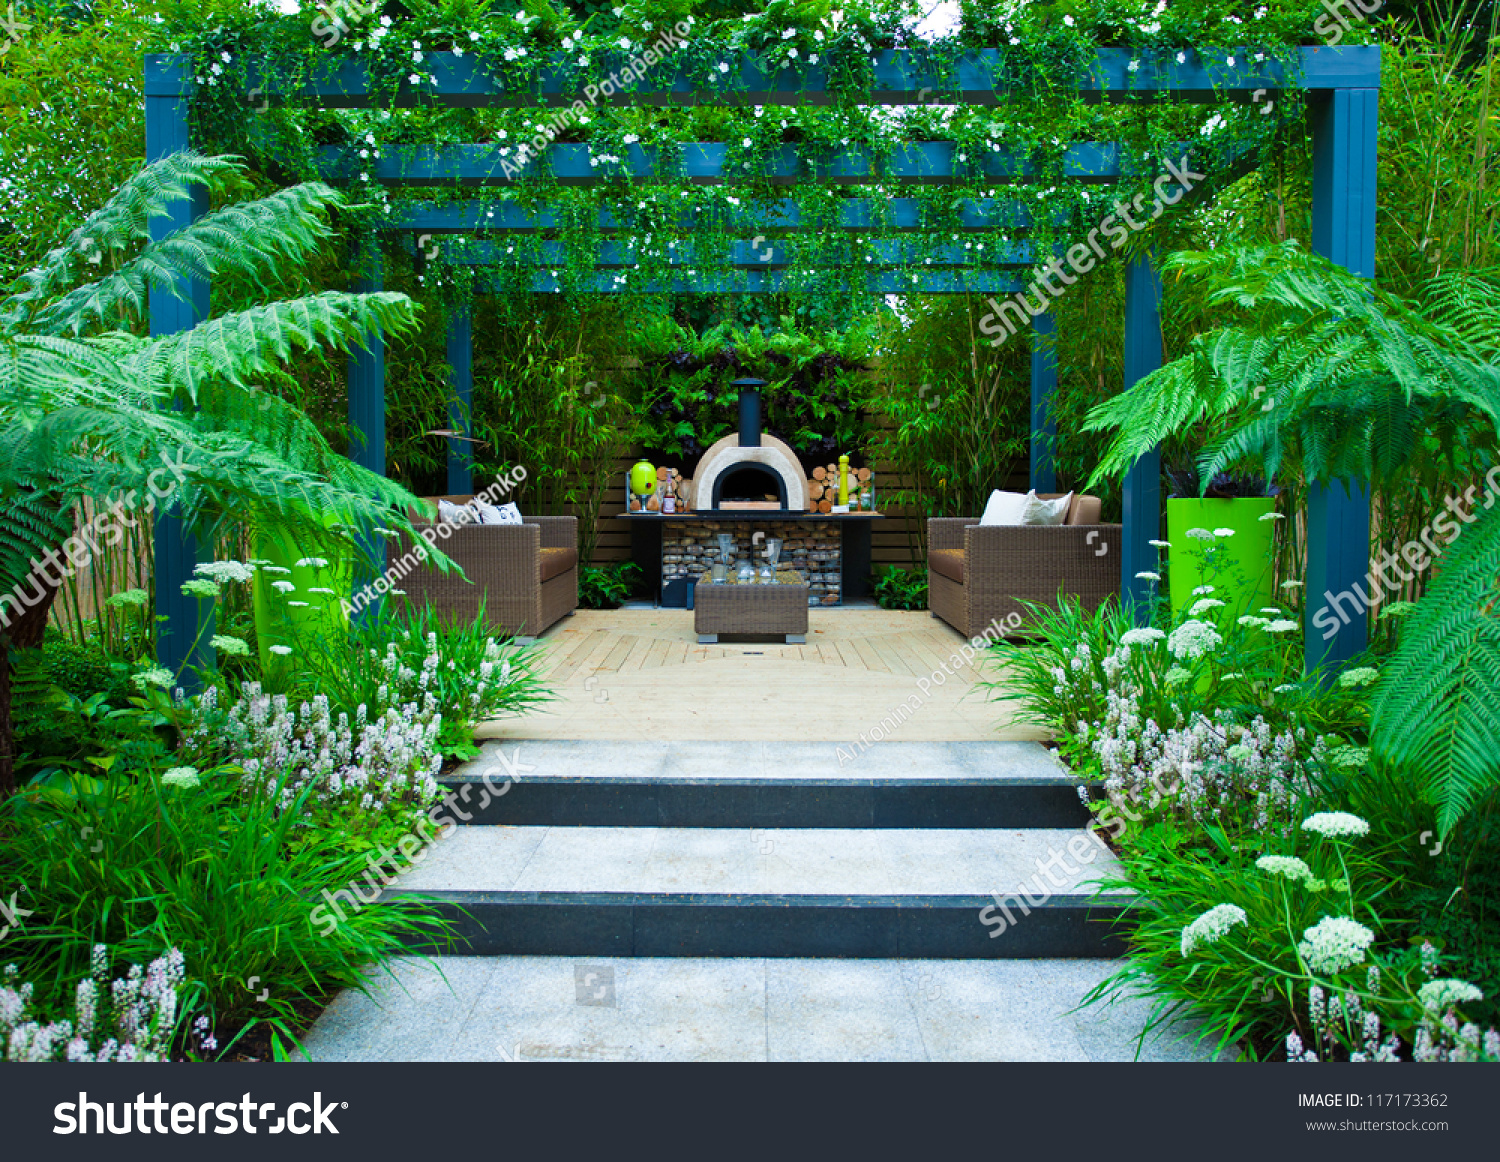 Tranquil Garden Patio Area Stock Photo 117173362